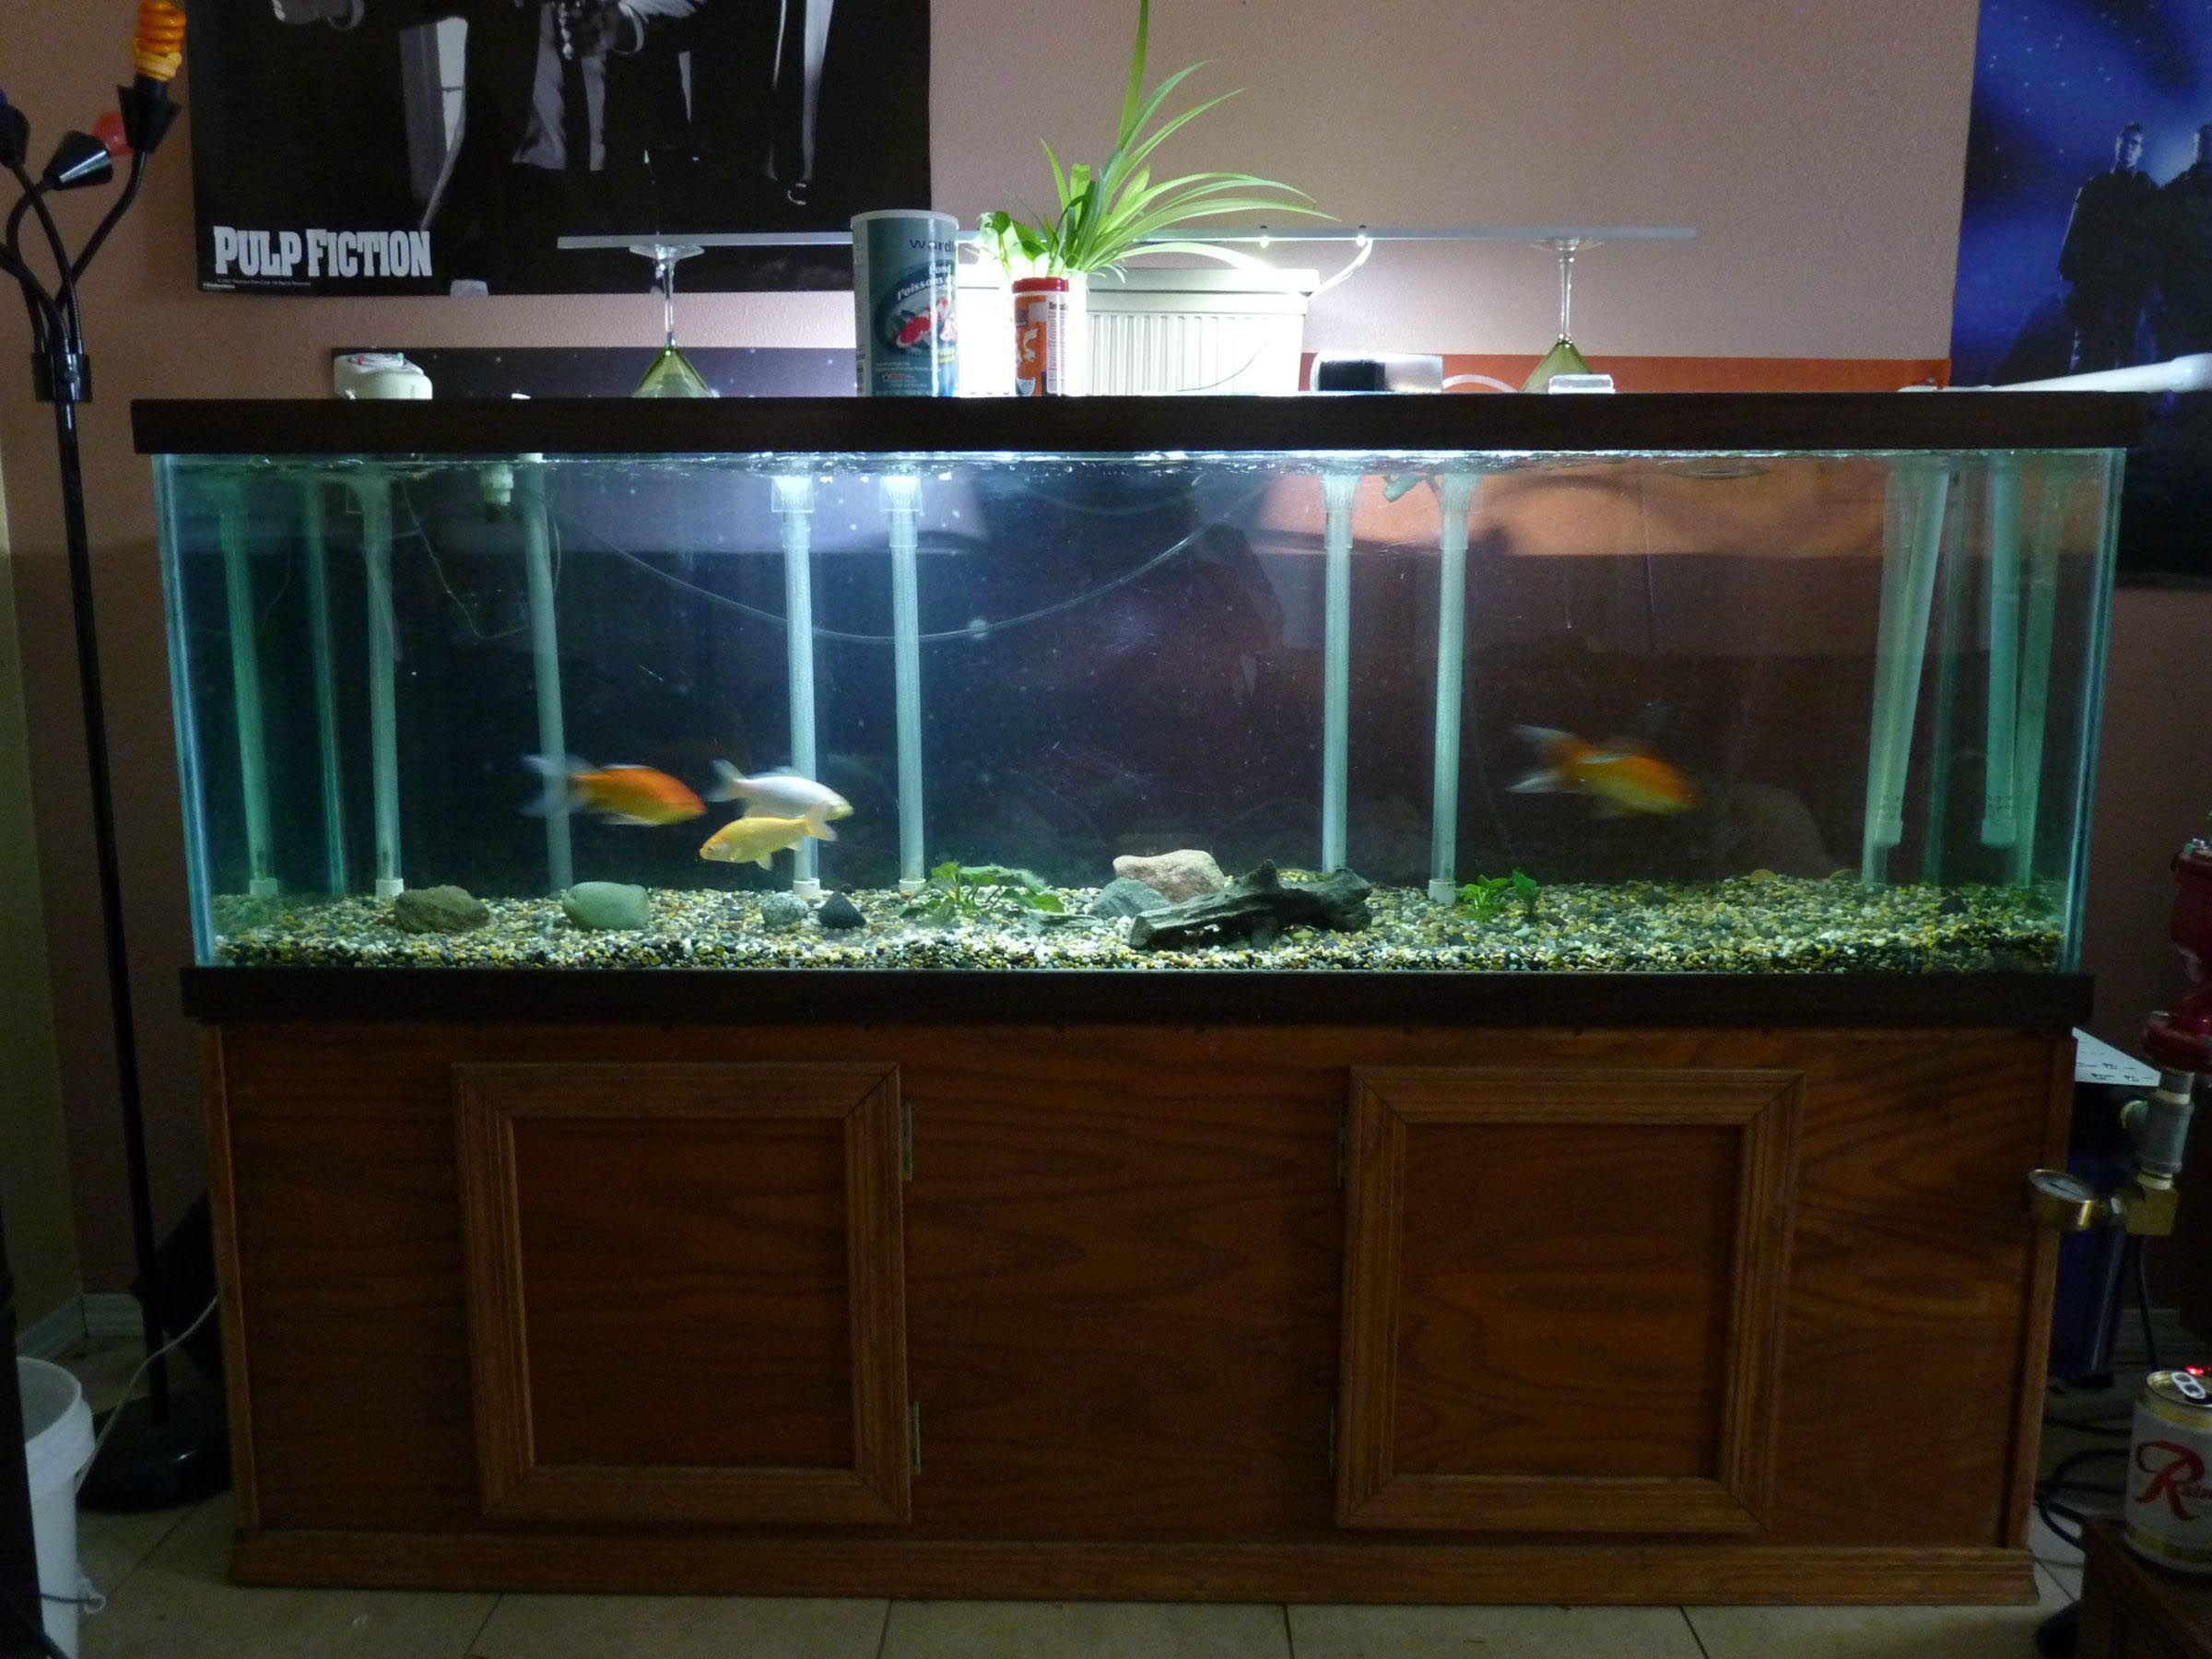 100 Gallons Aquarium Size Fish Tank Sizes 10 Gallon Fish Tank 100 Gallon Aquarium